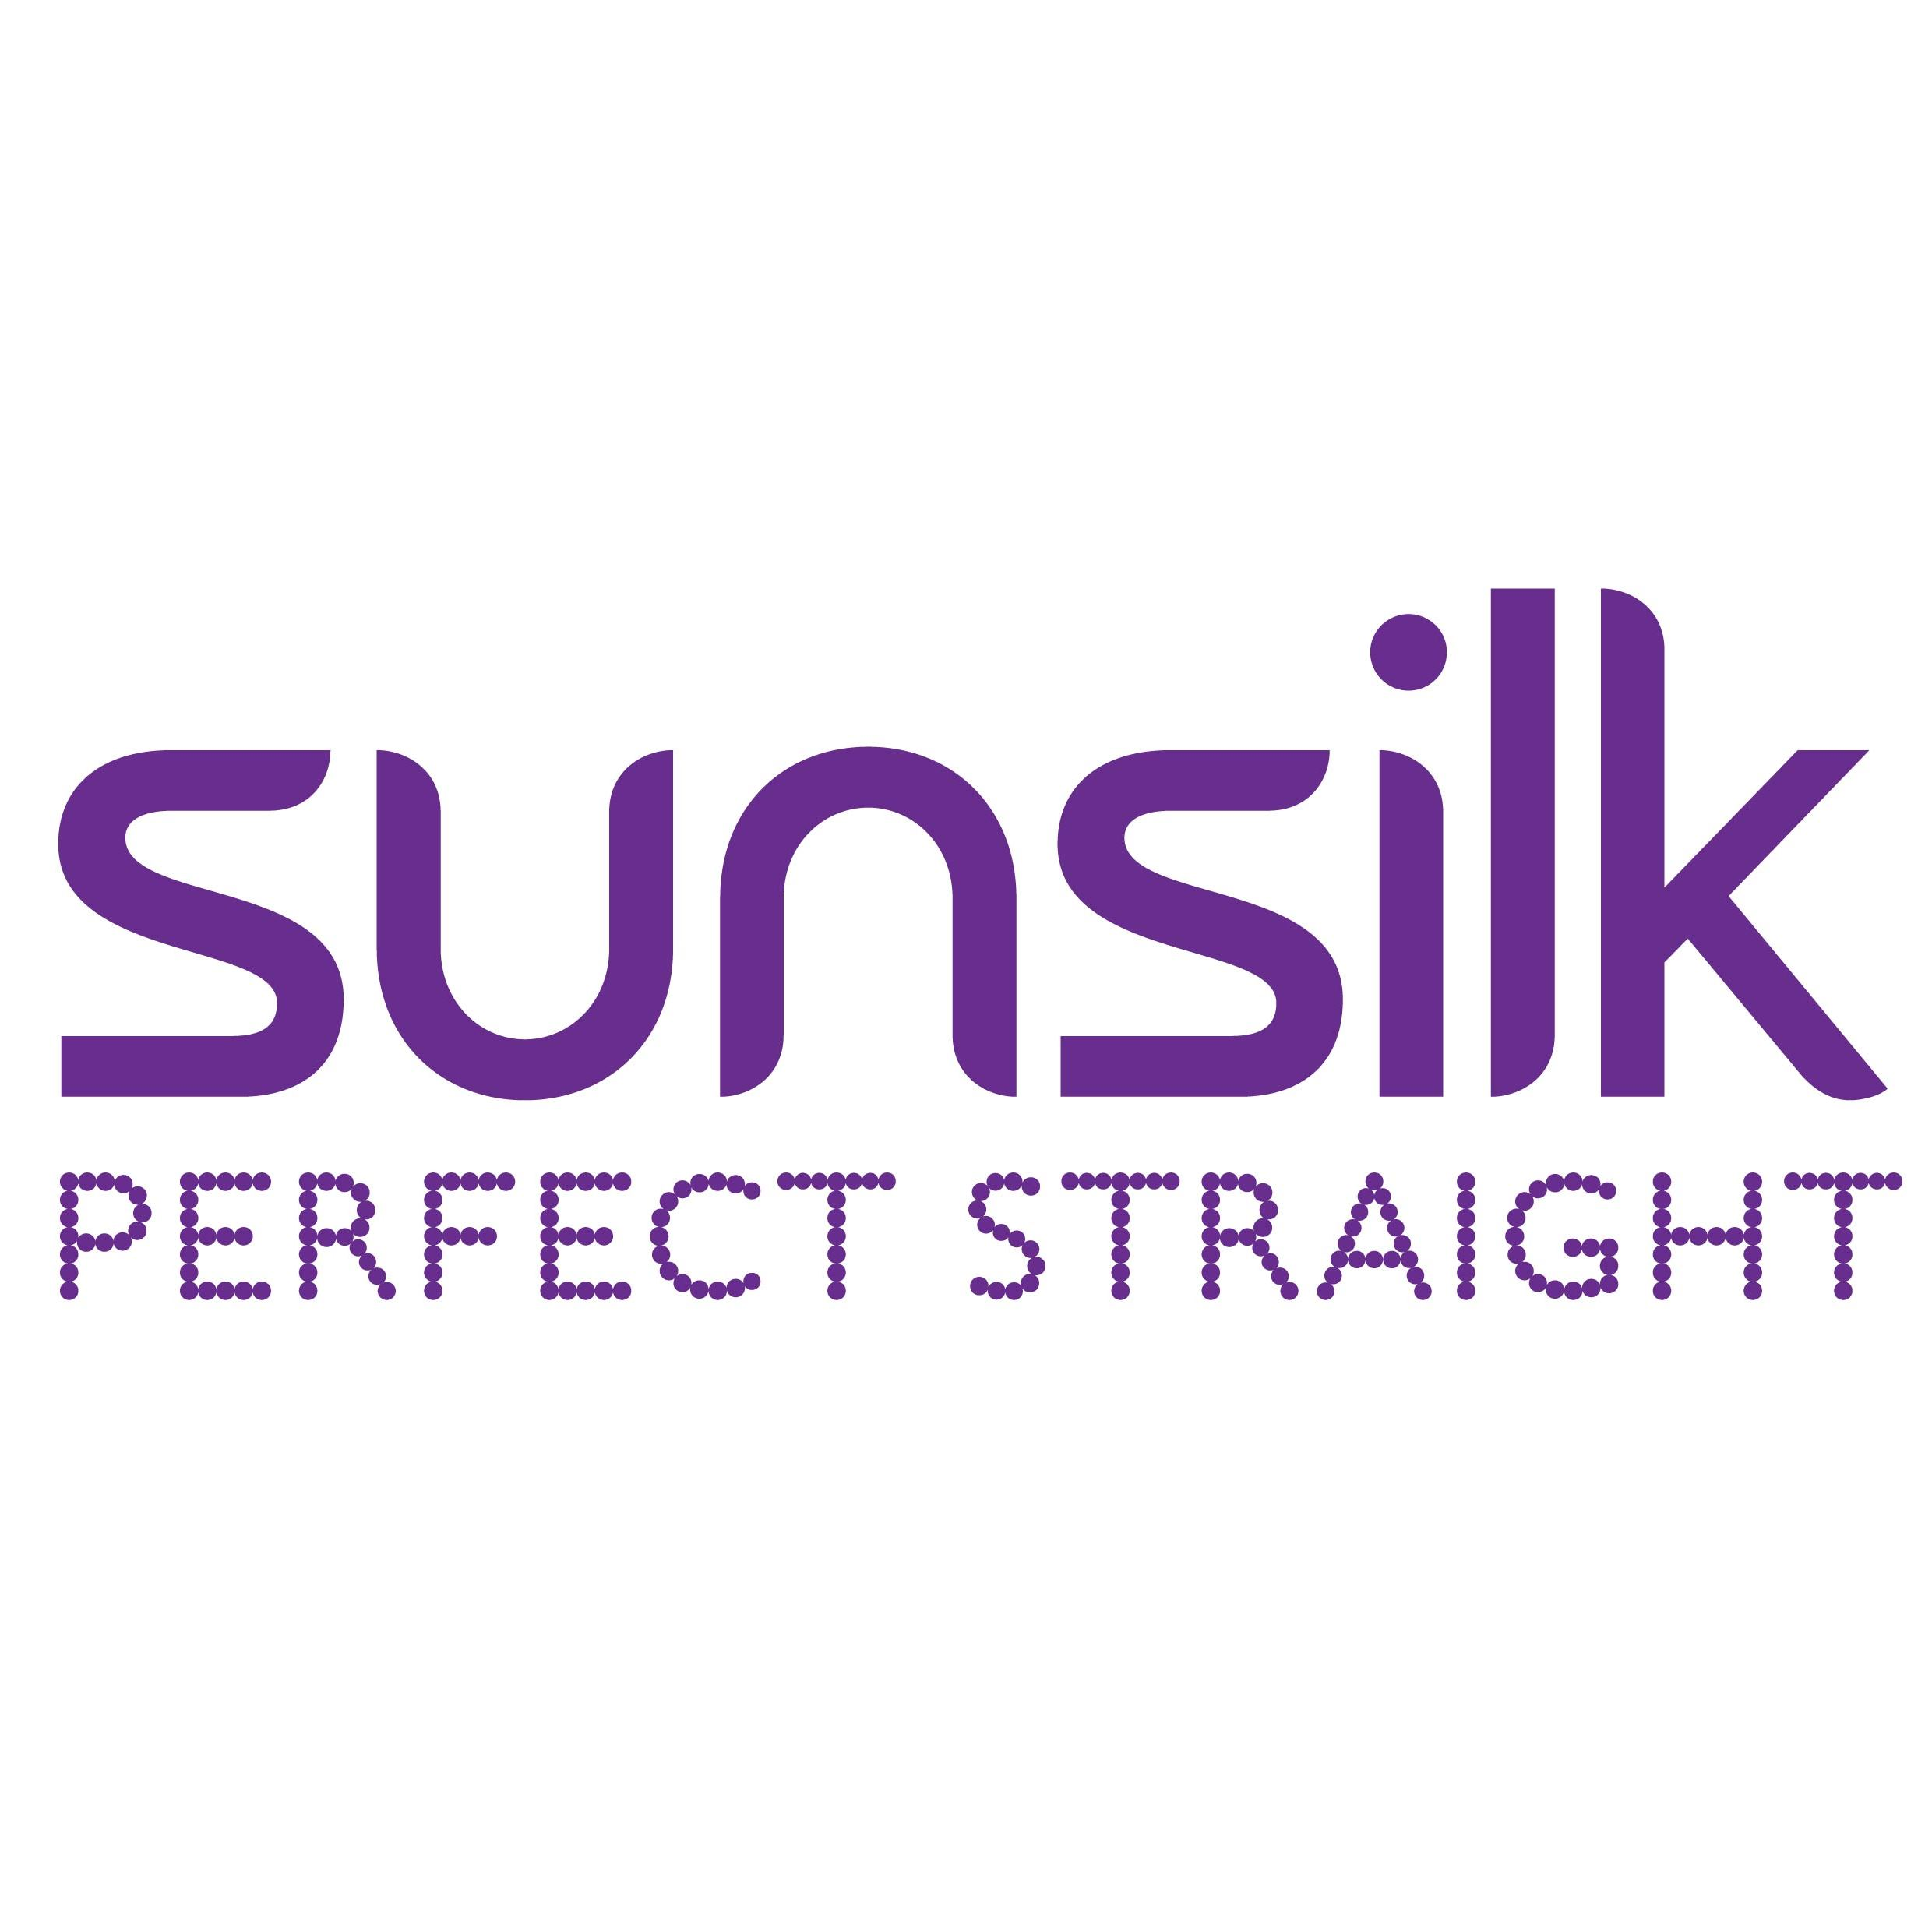 Ssk perfect straight logo ol 01   copy